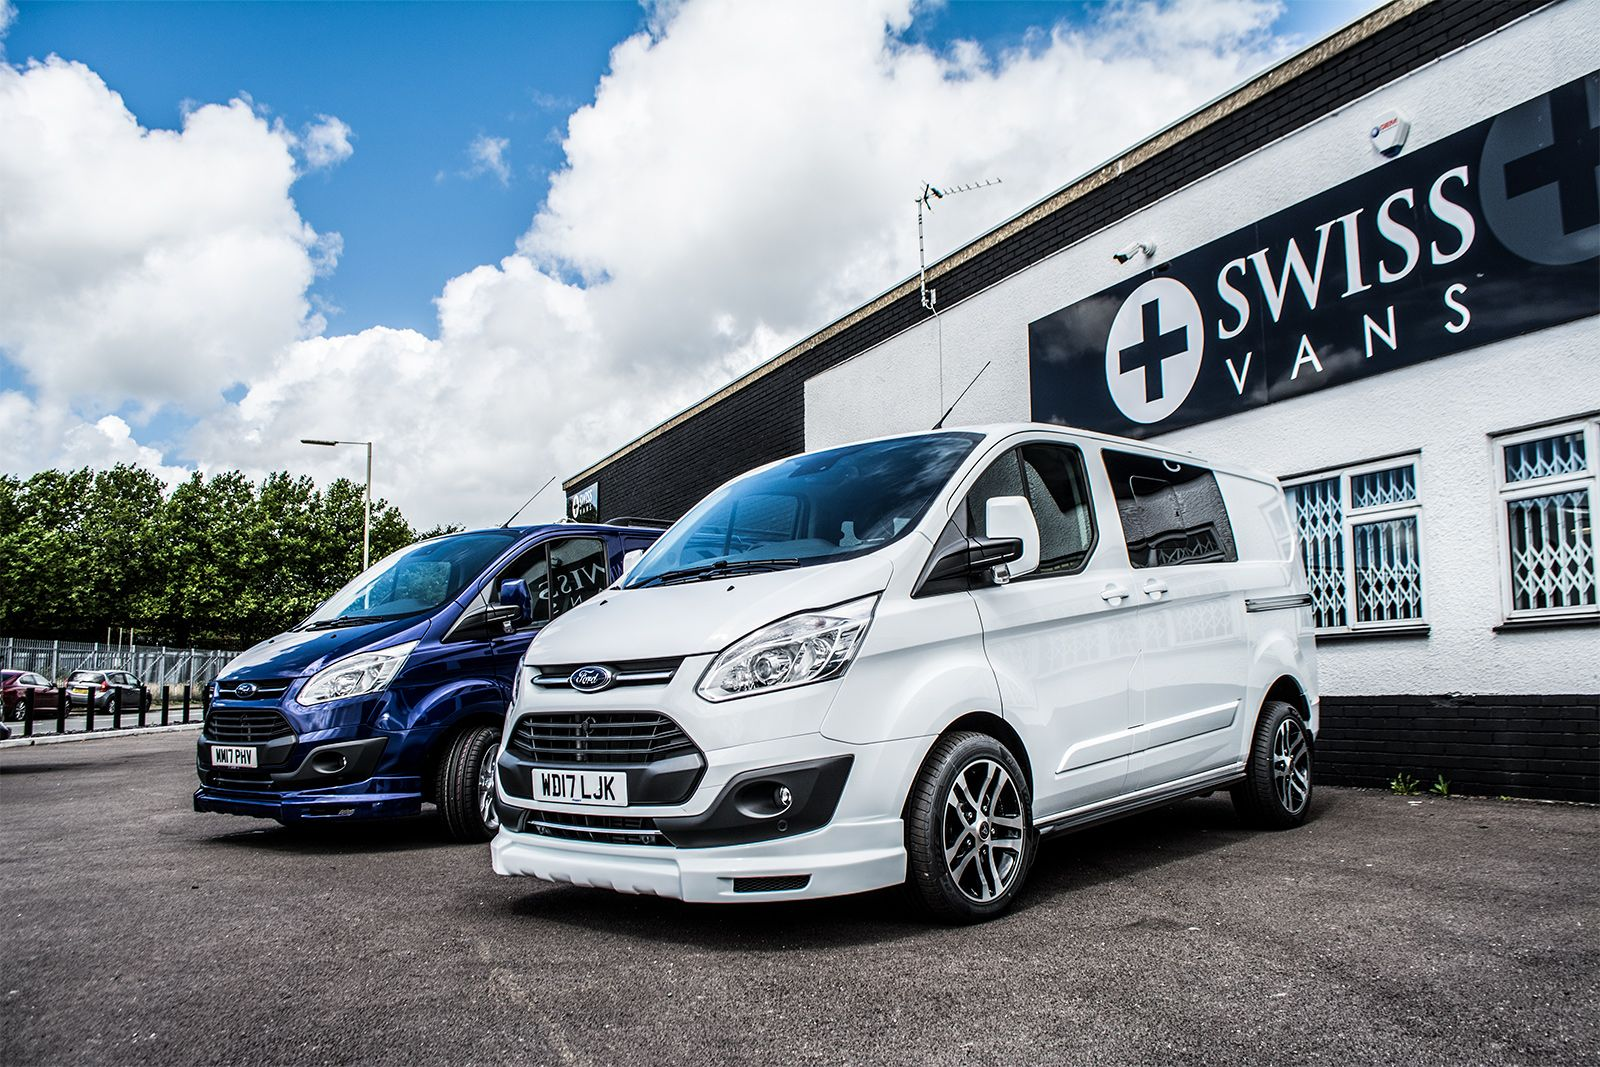 Ford Transit Custom Lease 1000 5 Star Reviews Swiss Vans Ford Transit Transit Custom Ford